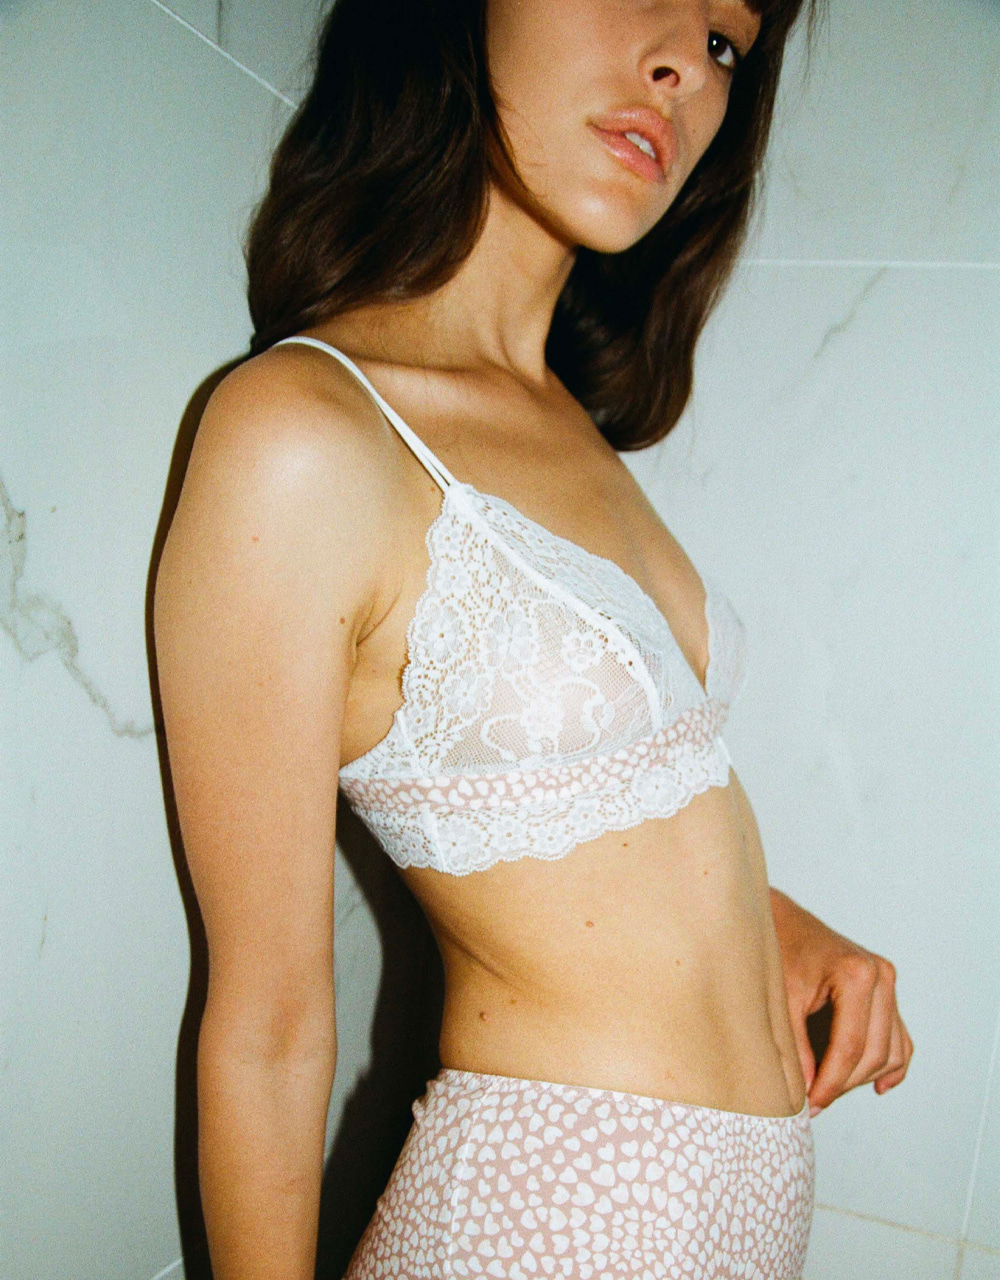 lingerie soutien-gorge sans armatures wild at heart Earlybird Wild at Heart 34 € Girls In Paris photo 3